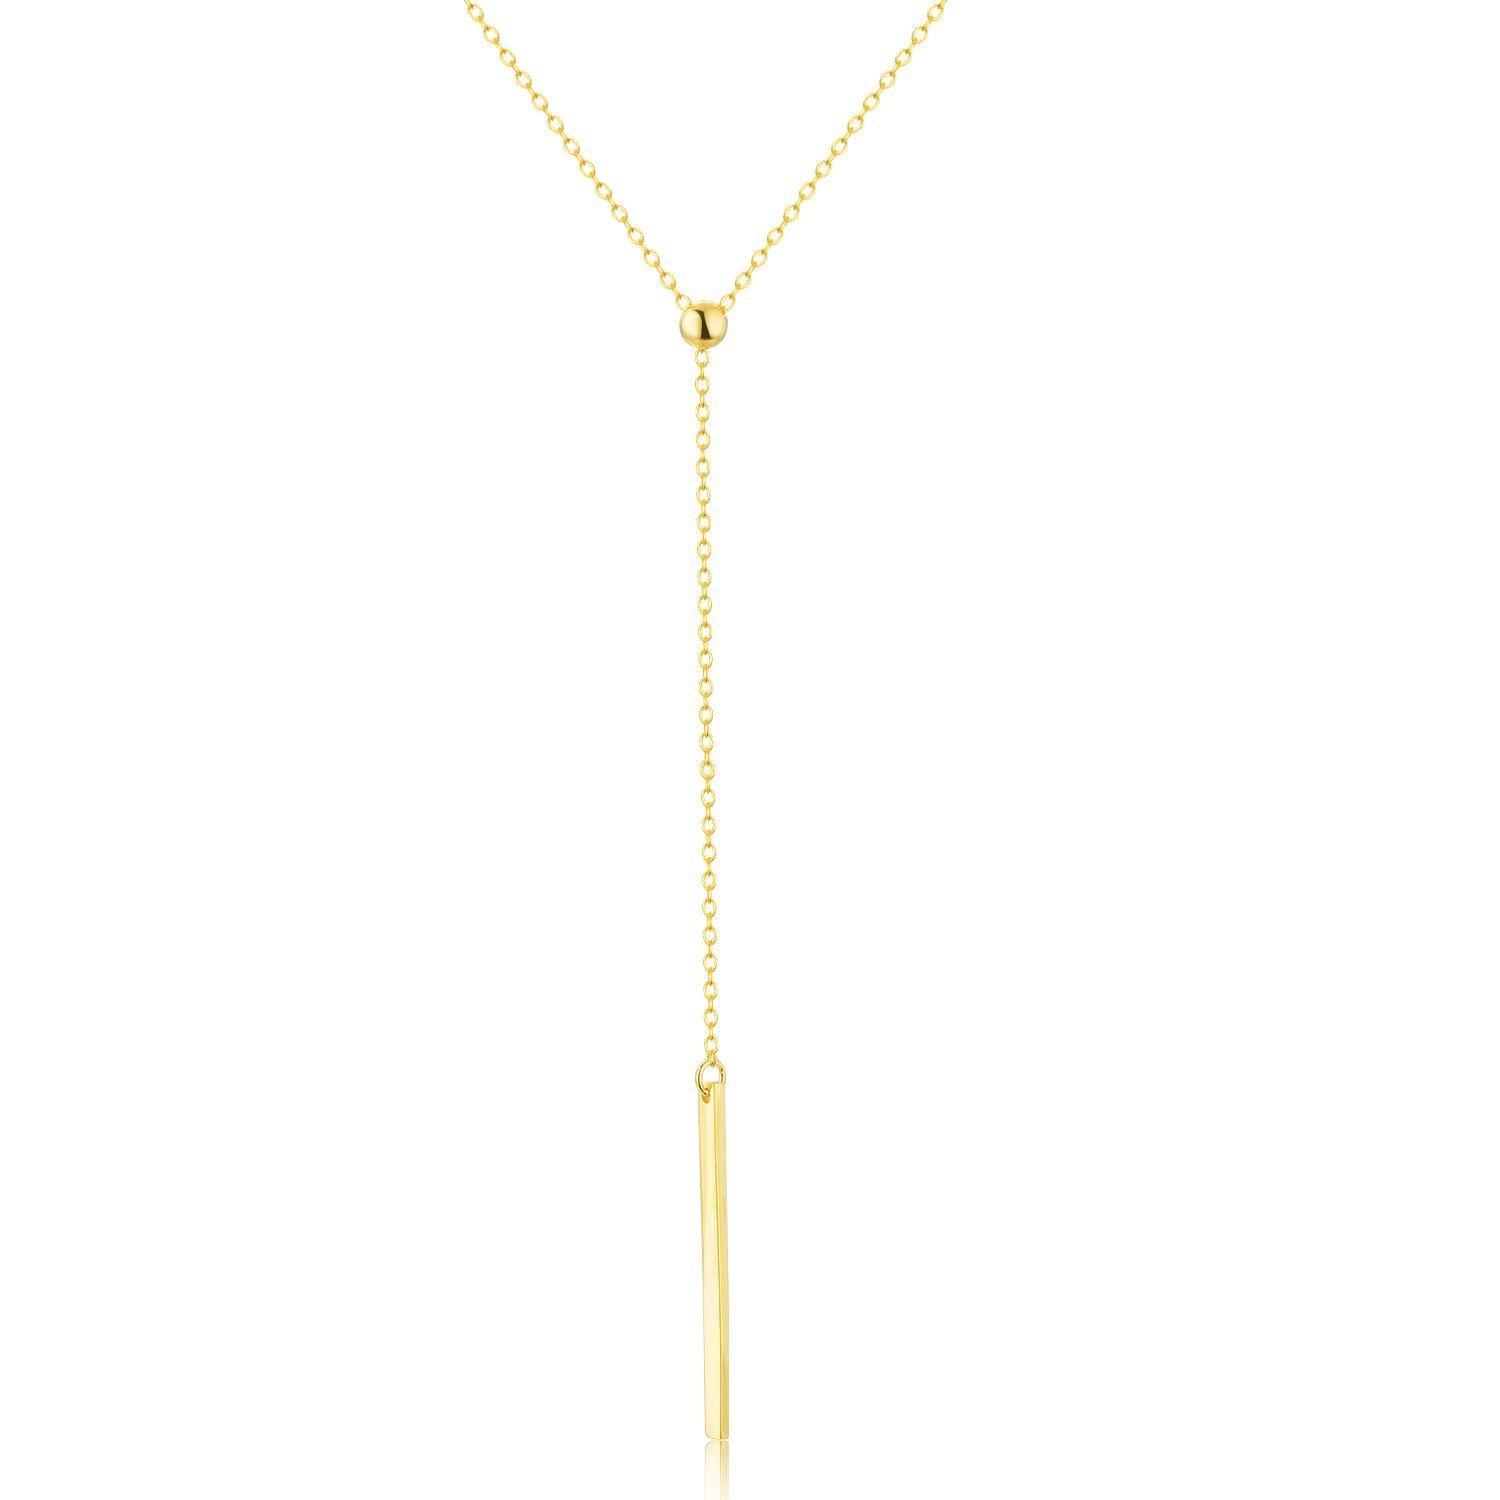 Lariat Vertial Bar Necklace [.925 Sterling Silver w/ 18K Gold Plating] Minimalist Style